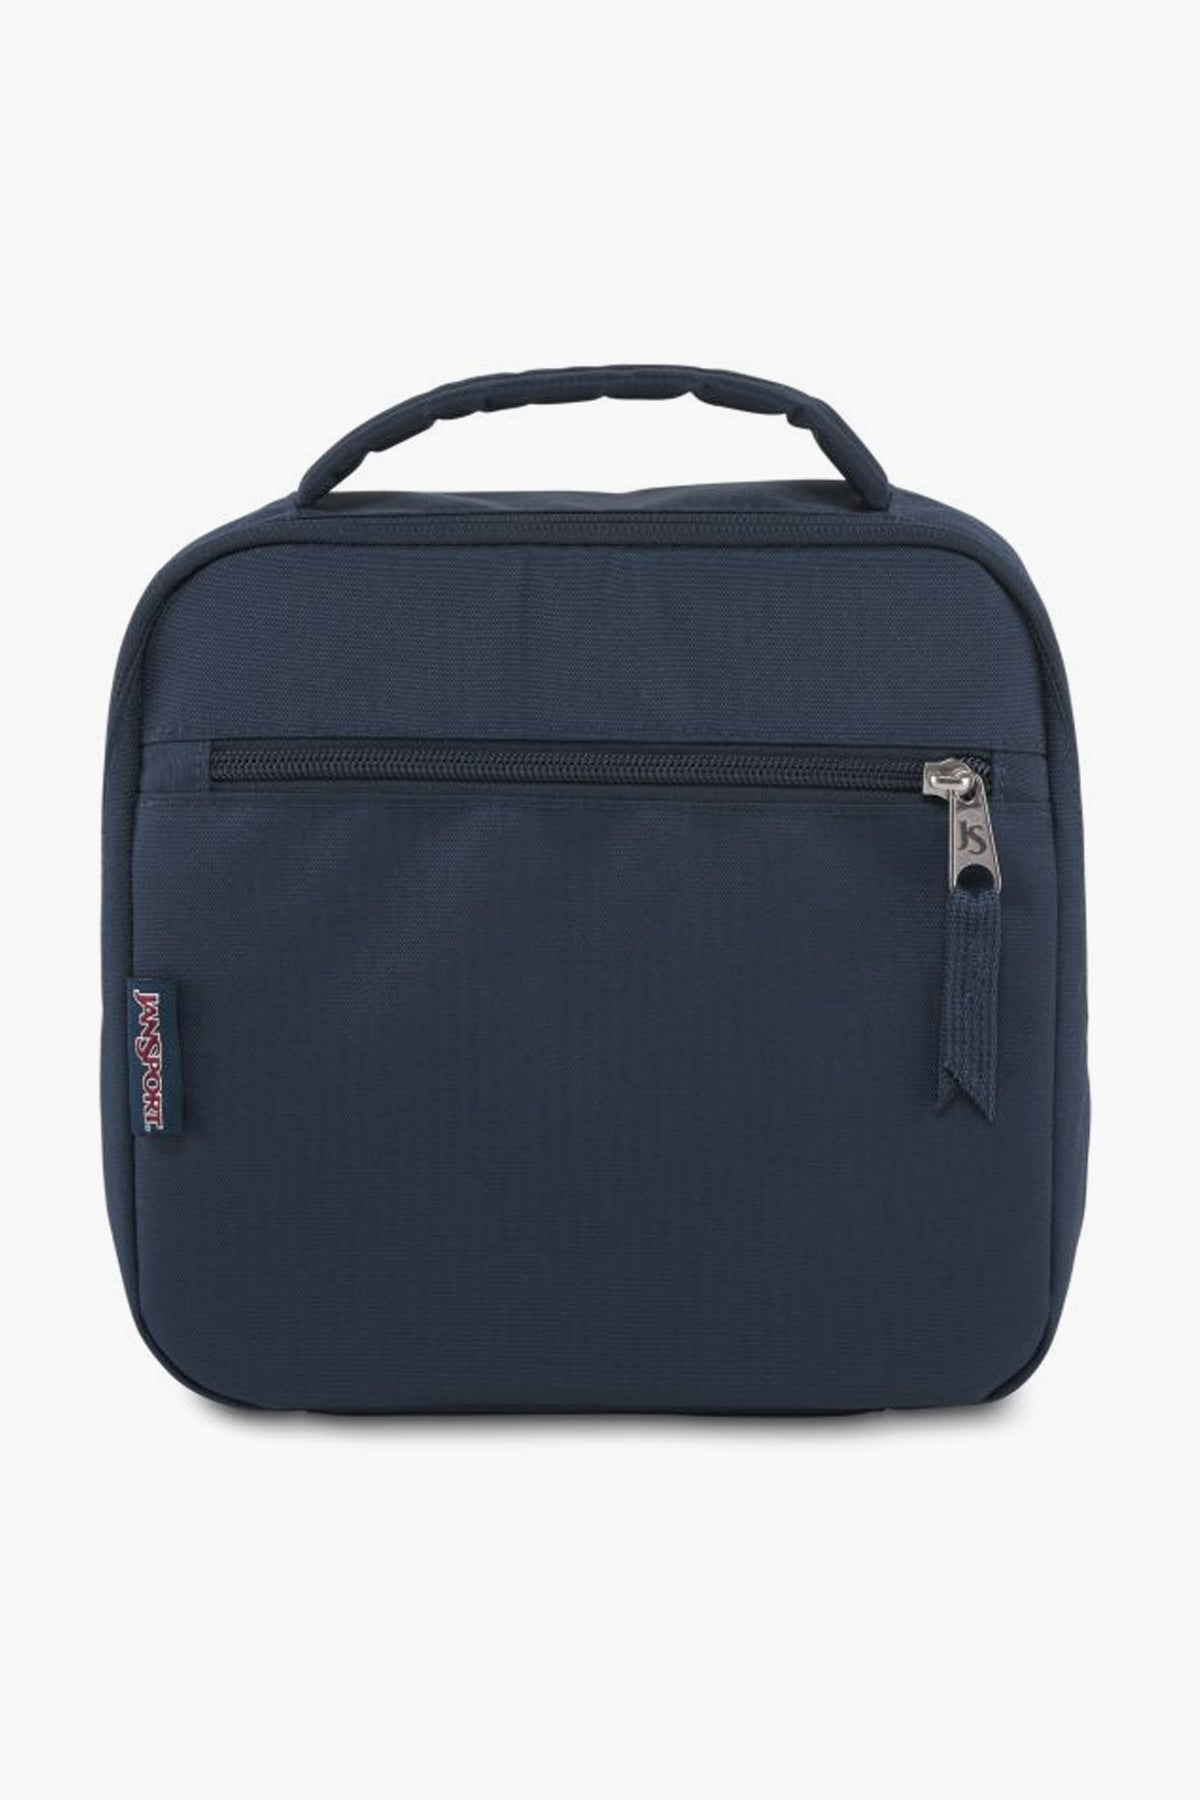 JanSport Lunch Break Lunchbox - Navy